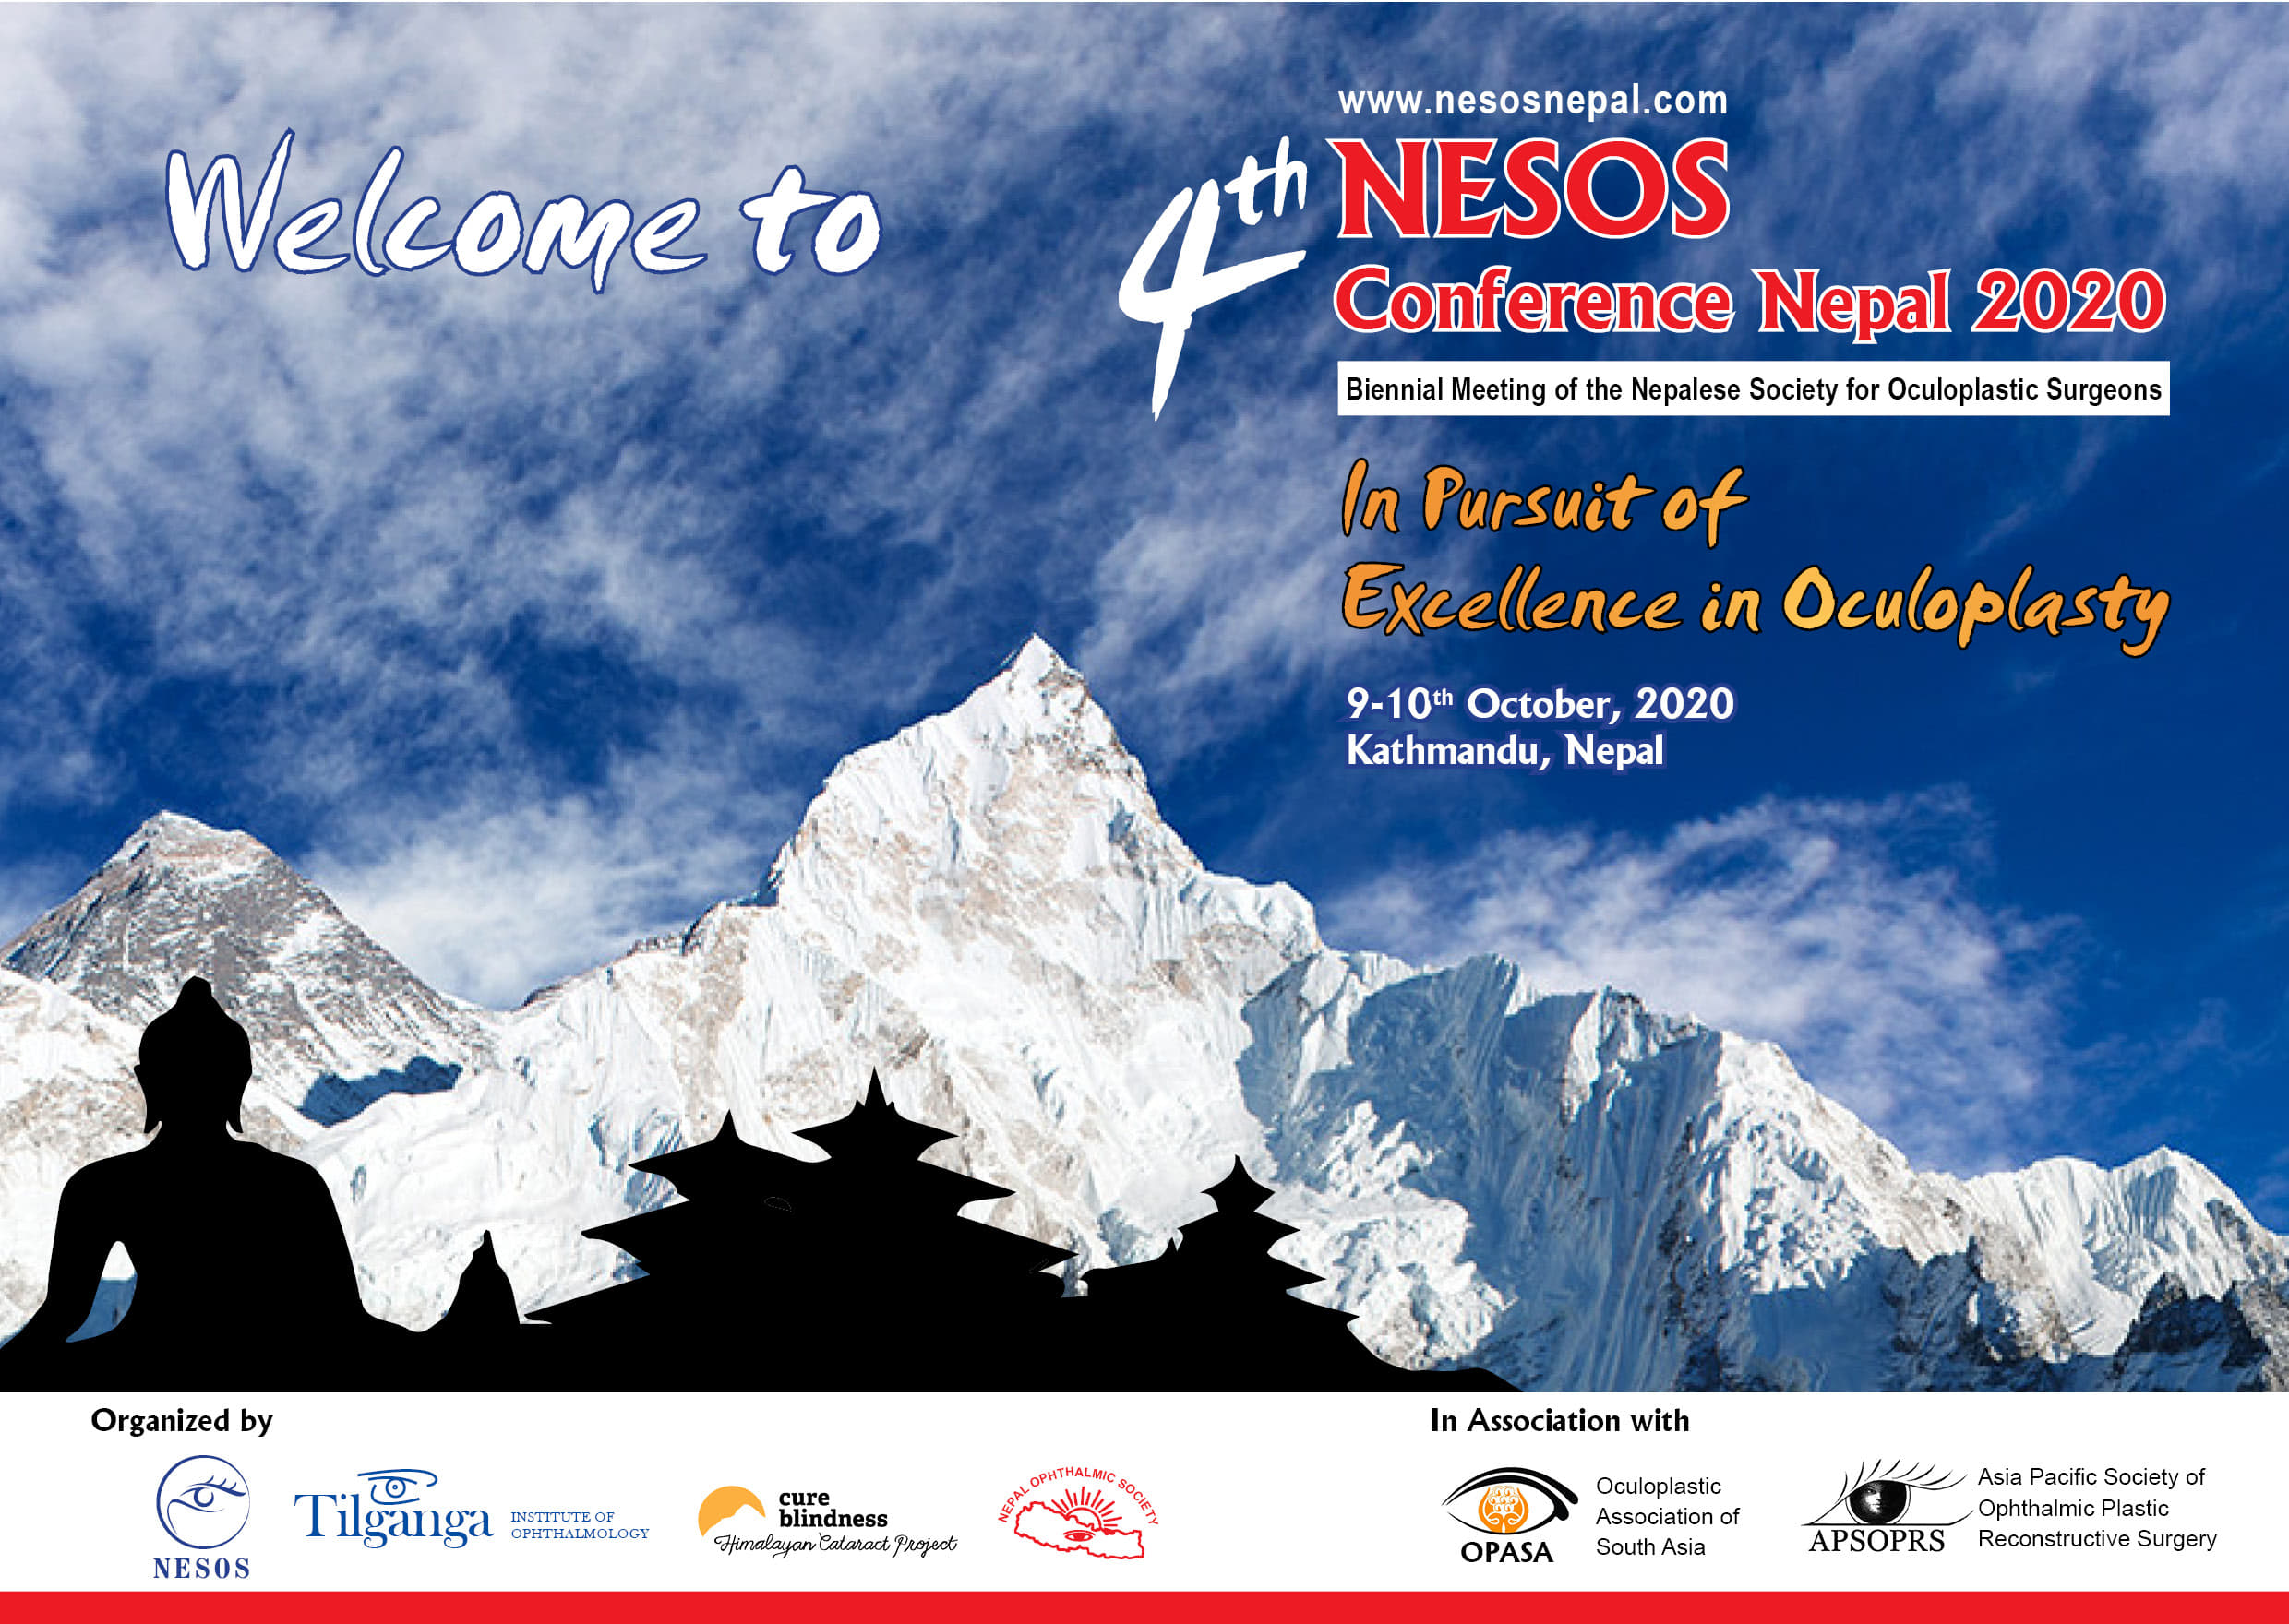 NESOS Conference Nepal 2020